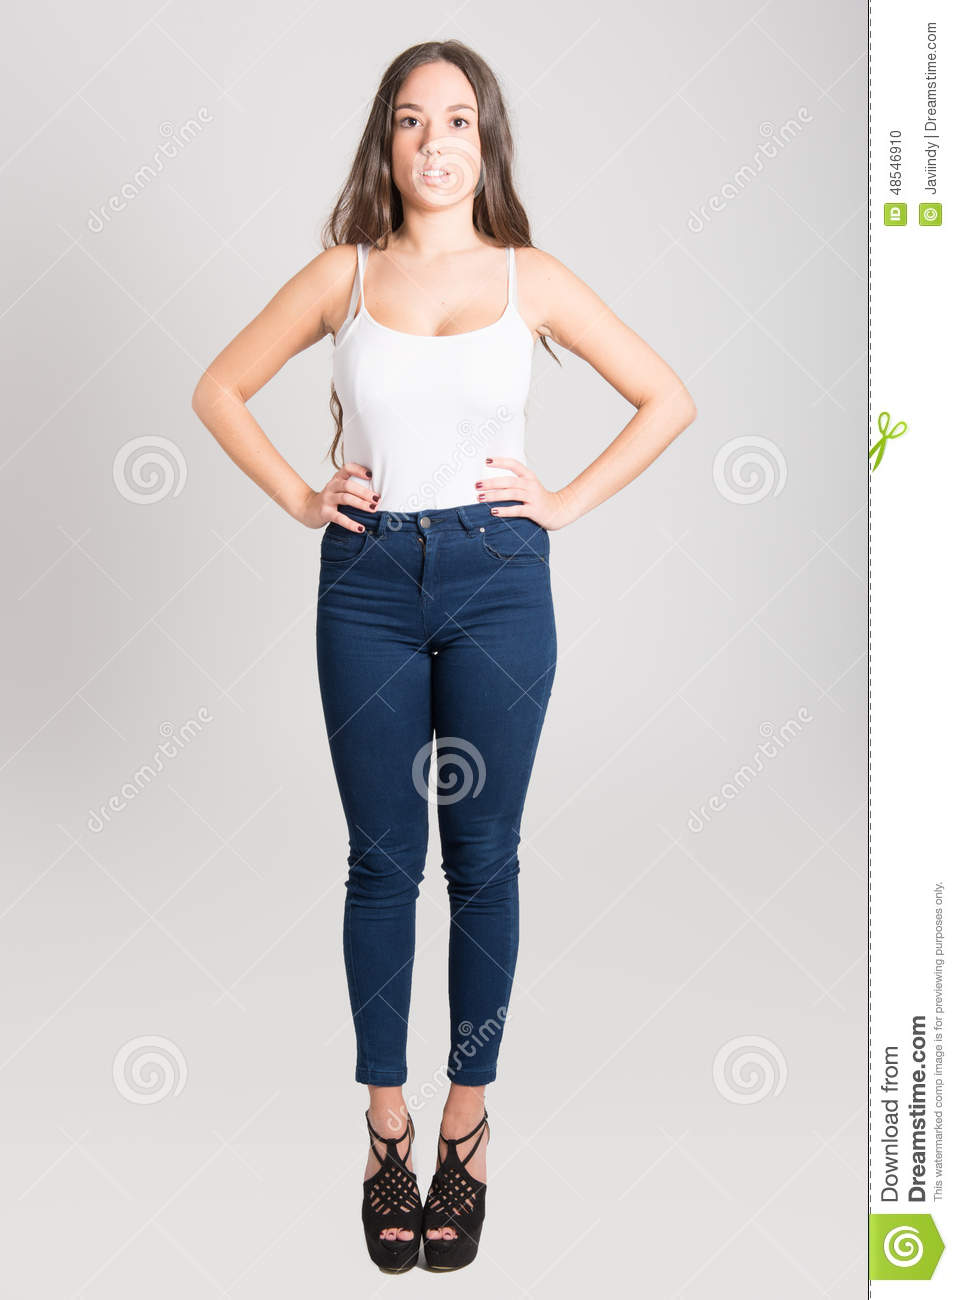 Woman With Long Hair Wearing White T-shirt And Blue Jeans Stock Photo - Image 48546910